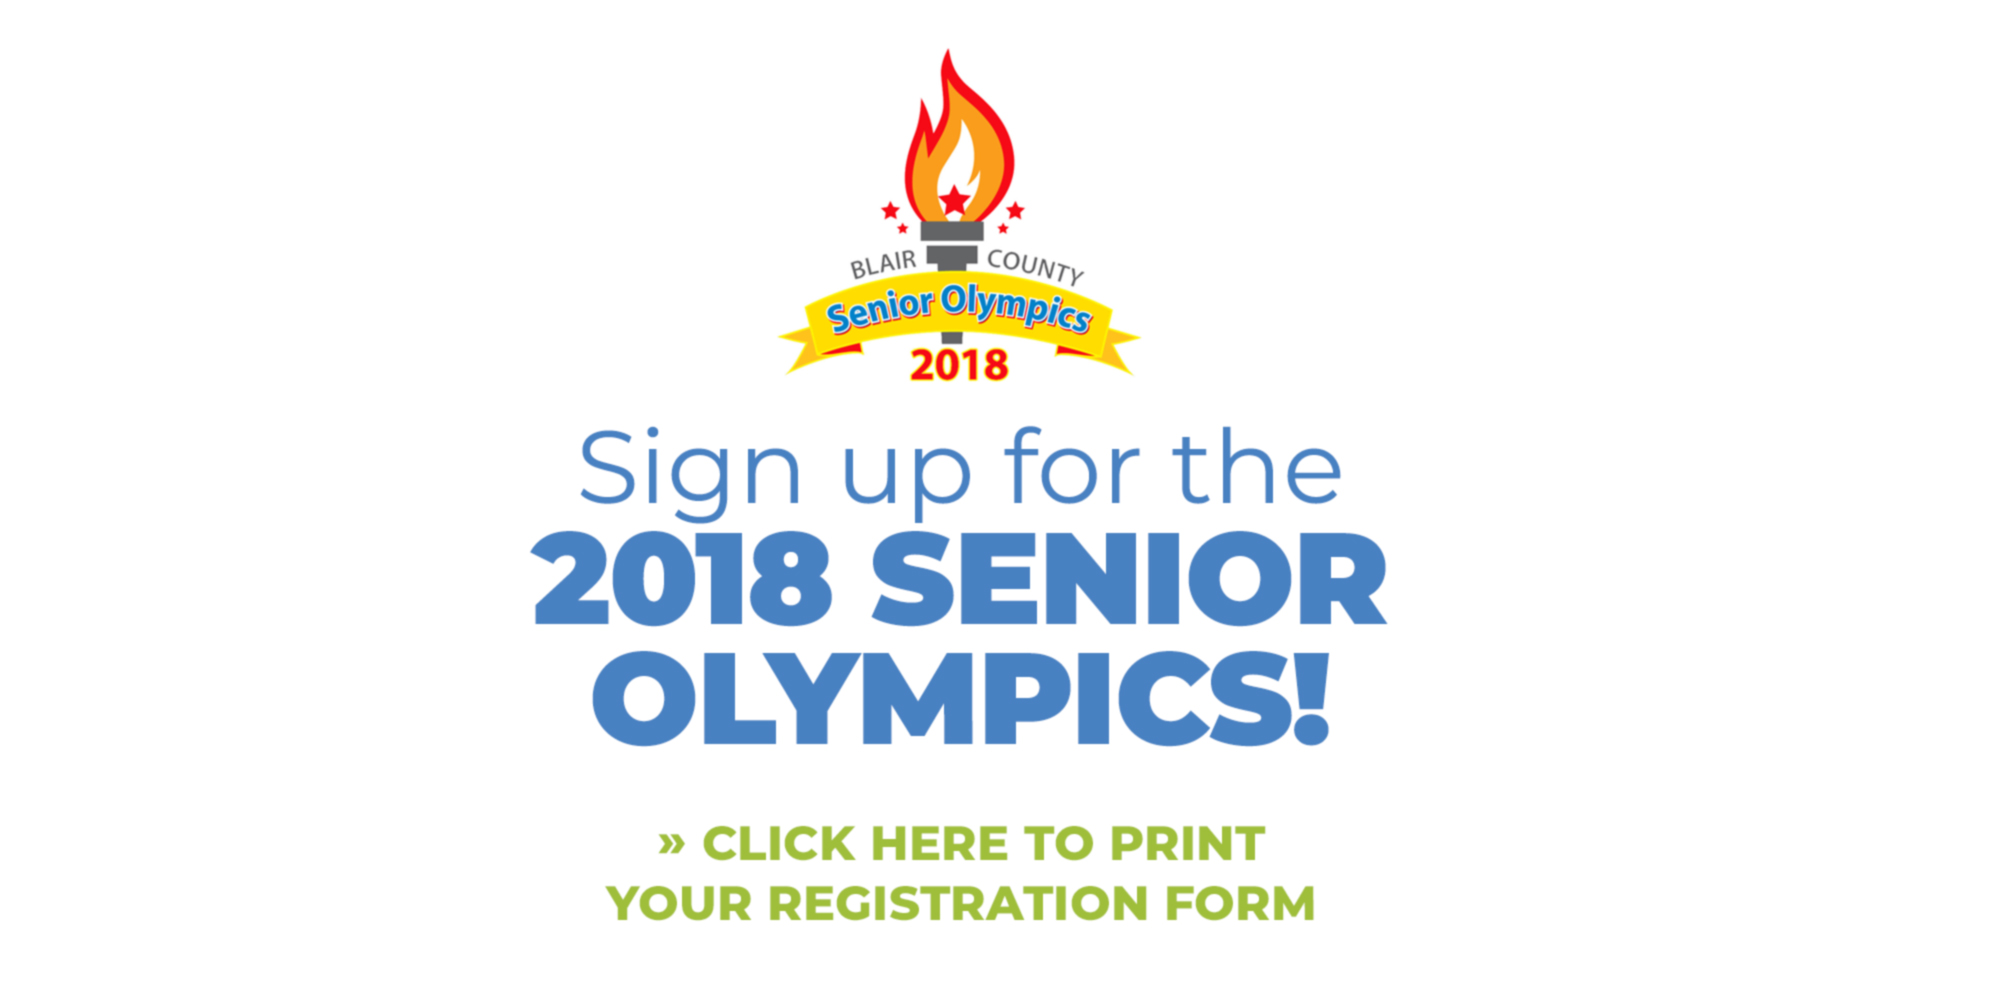 Read more about Sign up for the 2018 Senior Olympics!